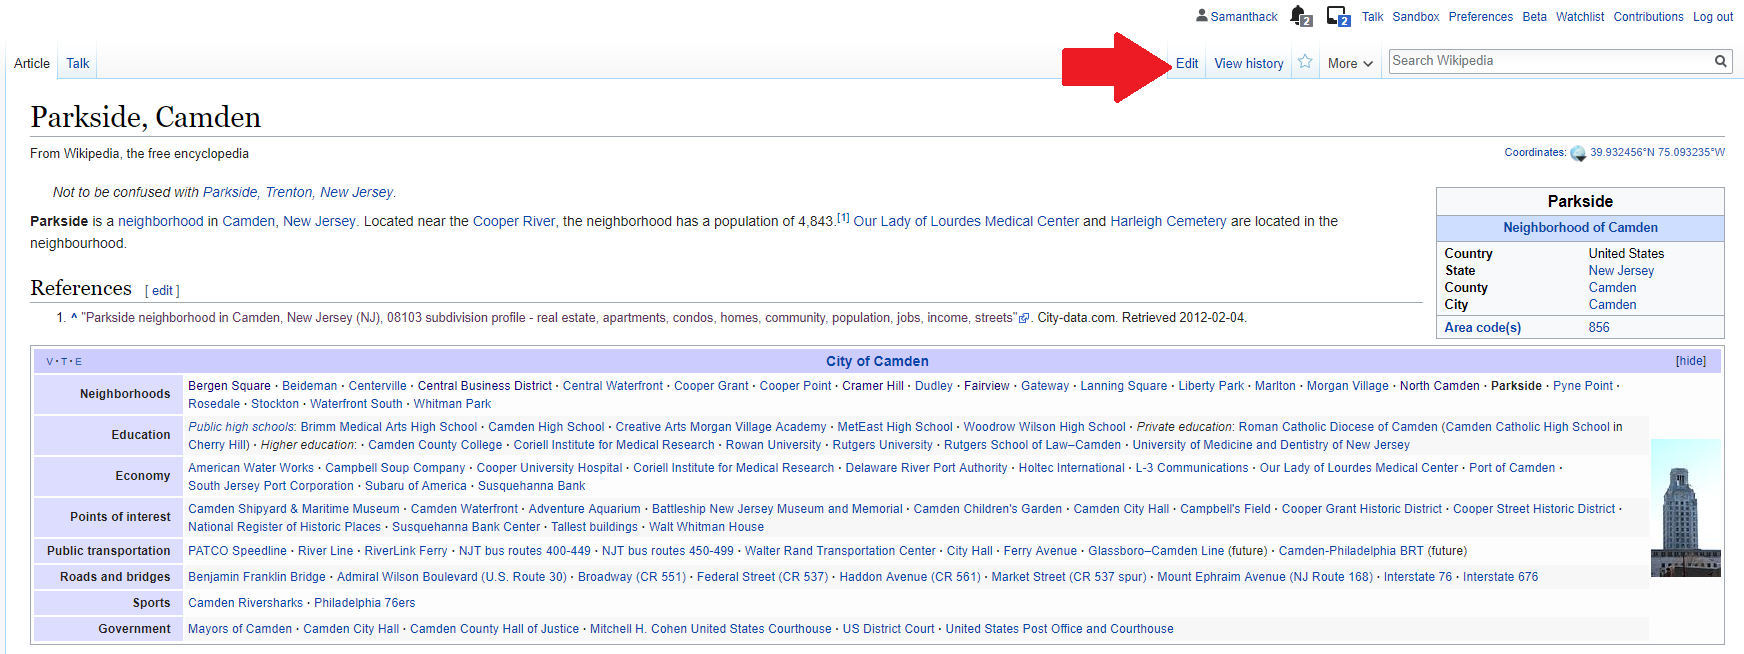 Wikipedia article with red arrow pointing to the edit button